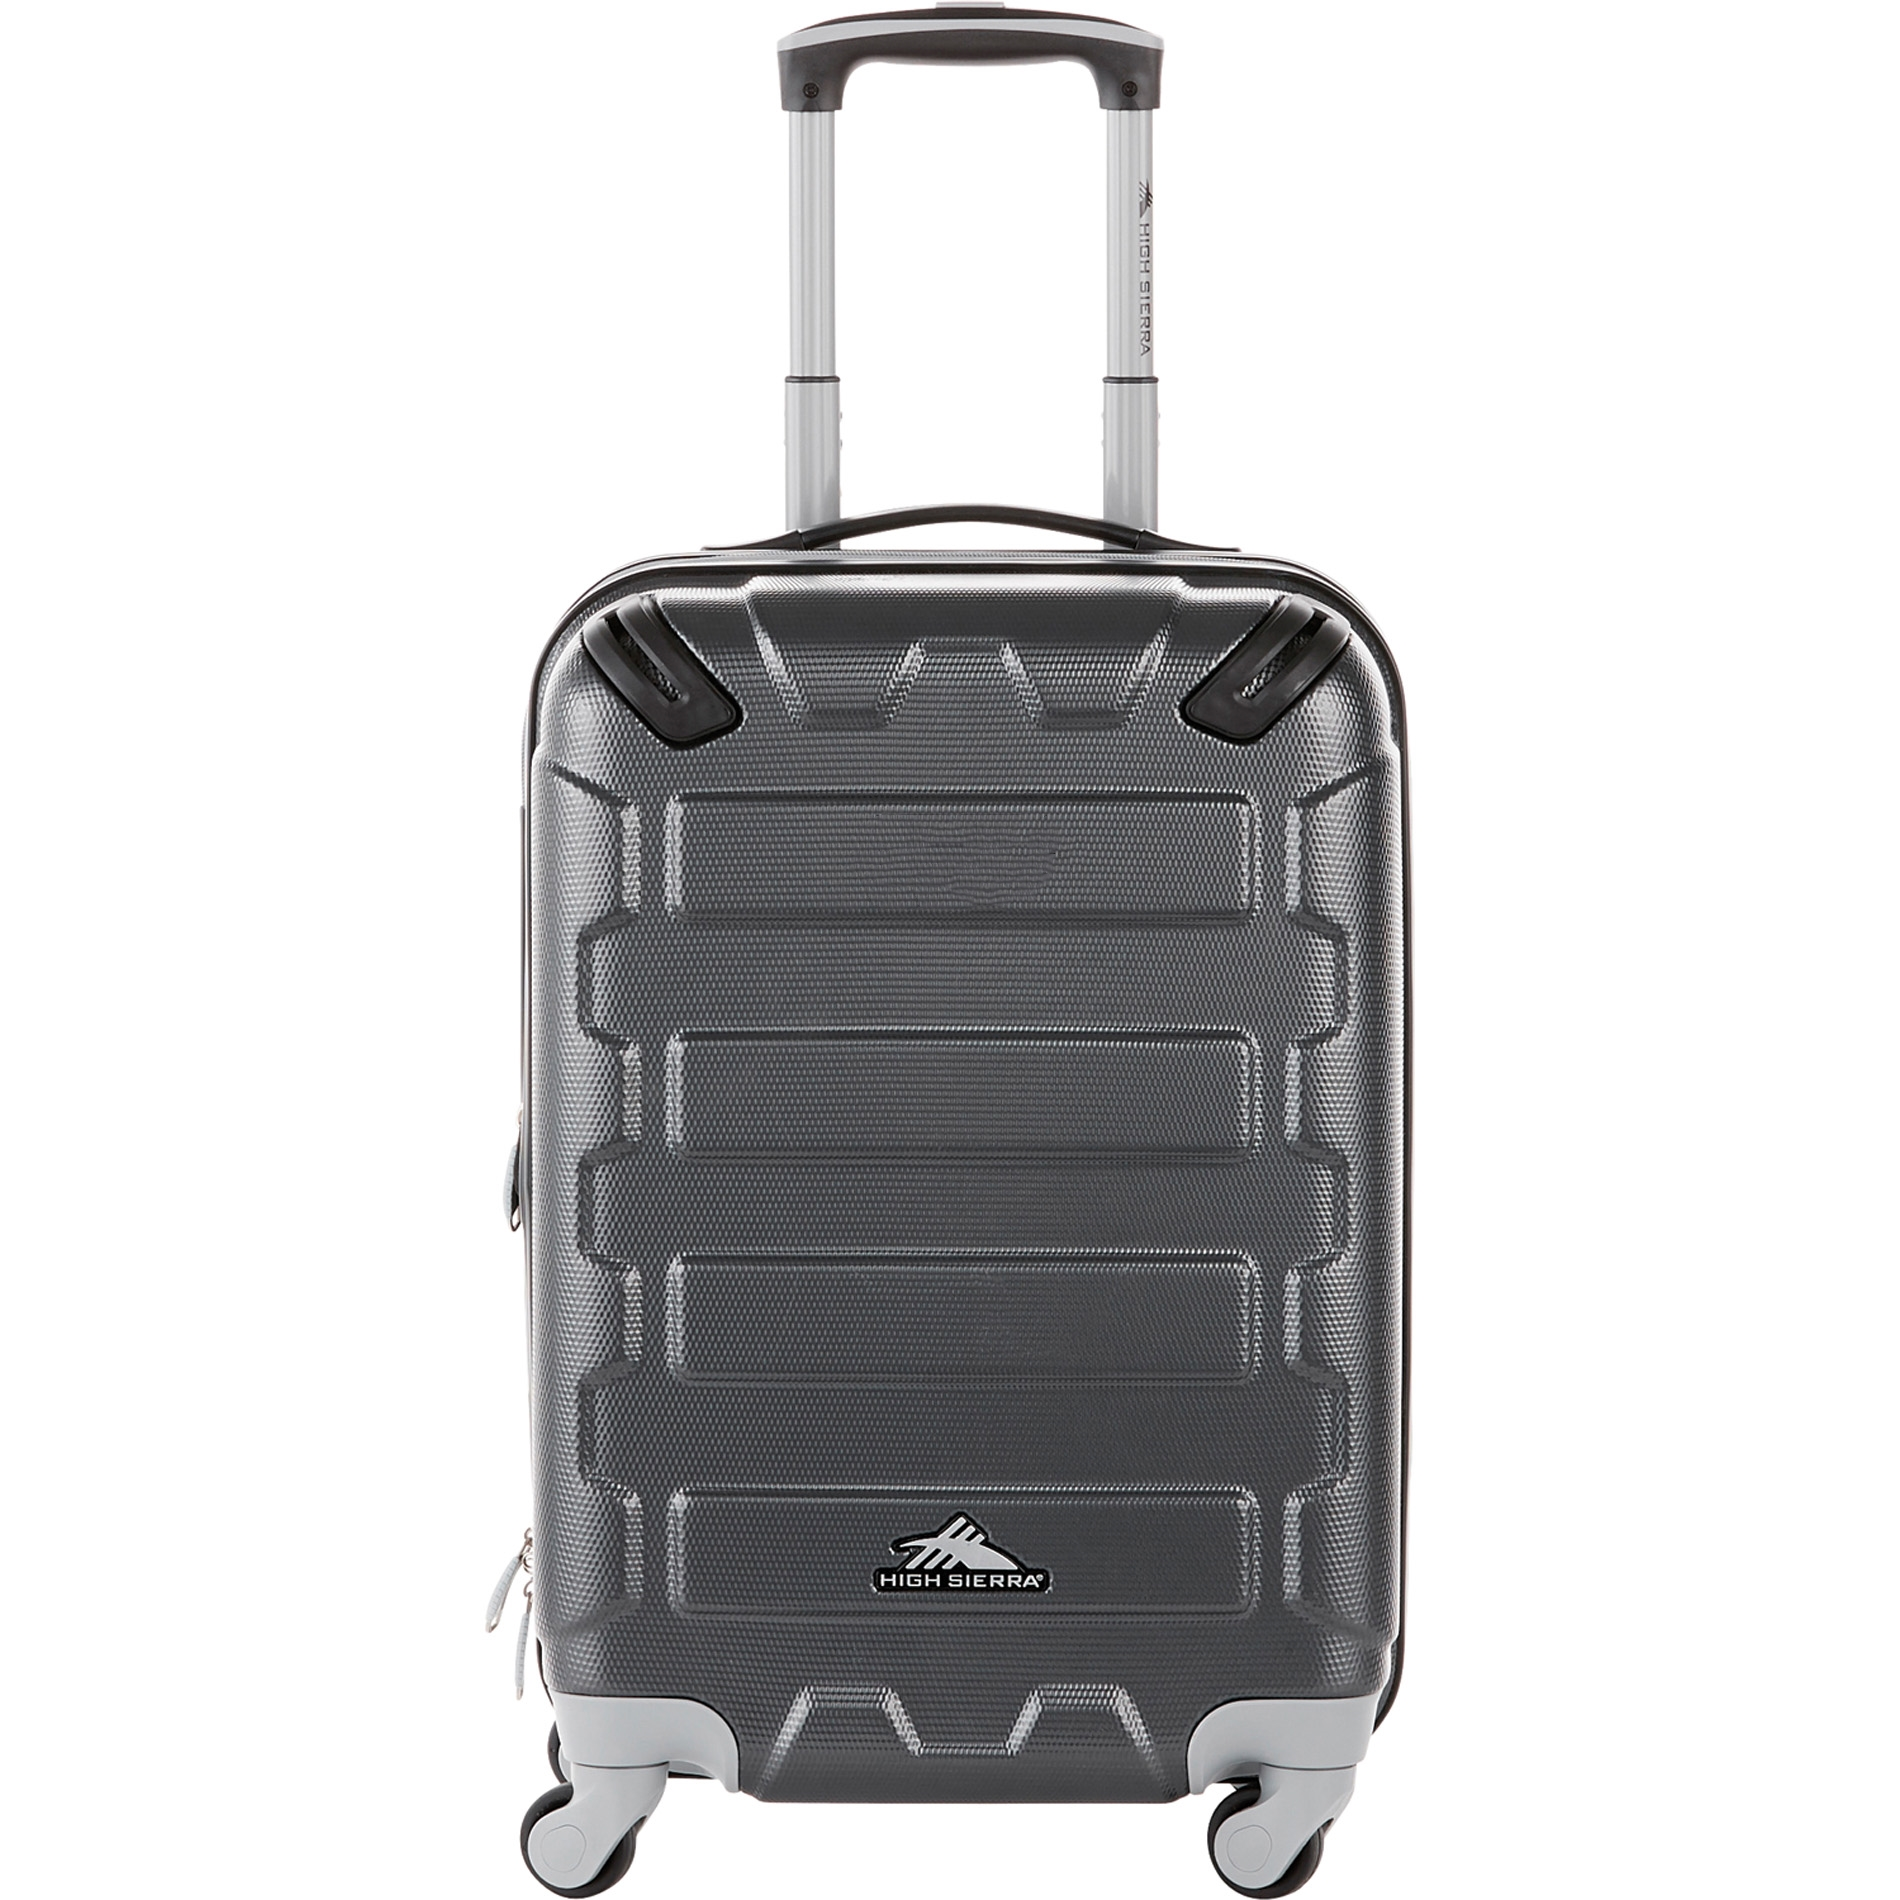 "High Sierra 8052-97 - 20"" Hardside Luggage"